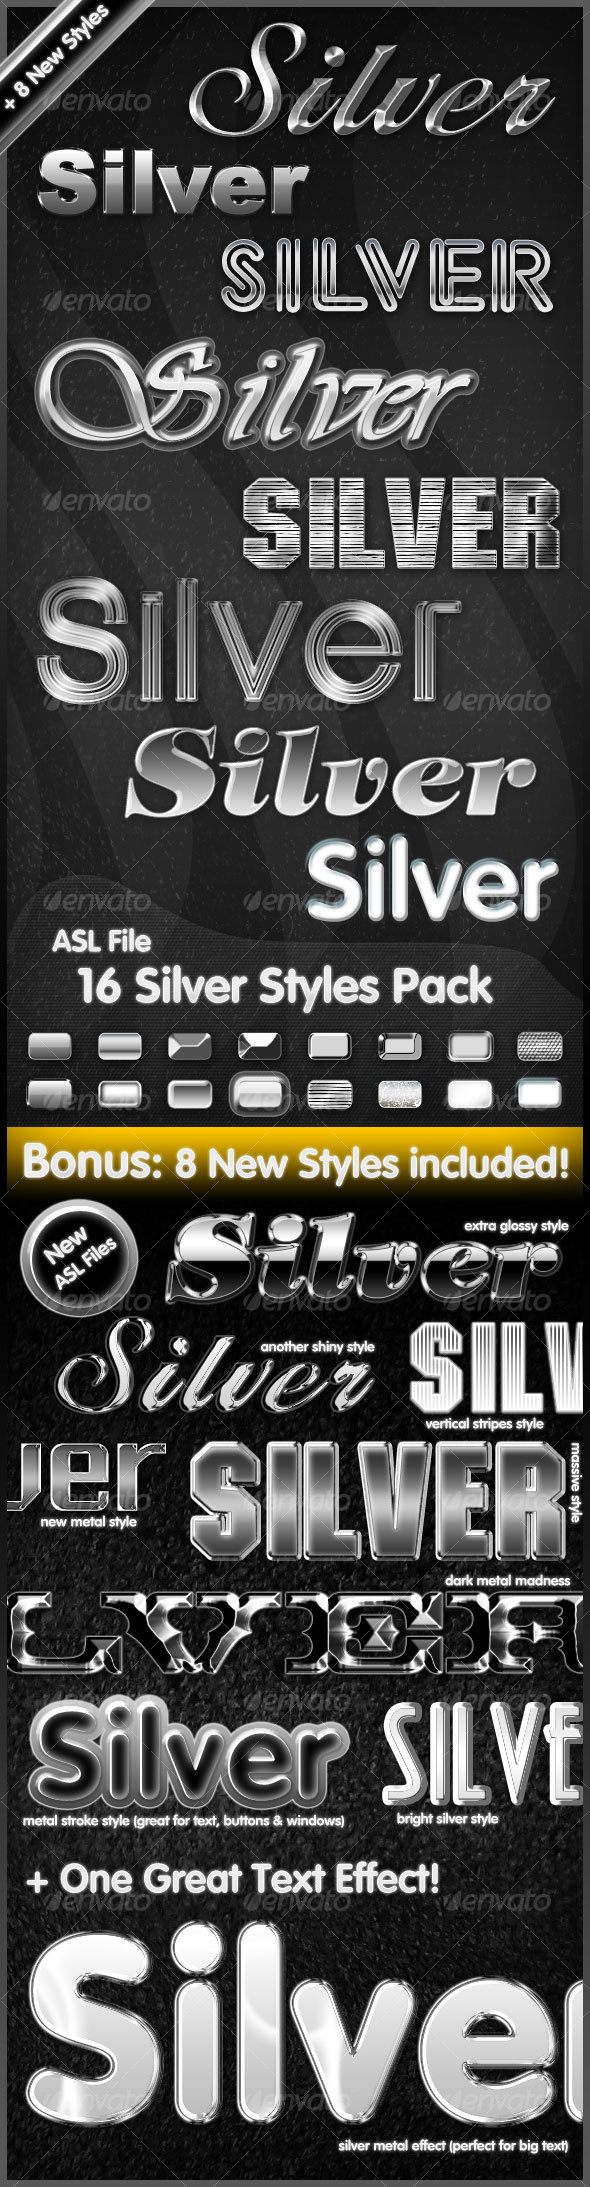 GraphicRiver 16 Silver Styles Pack 51405